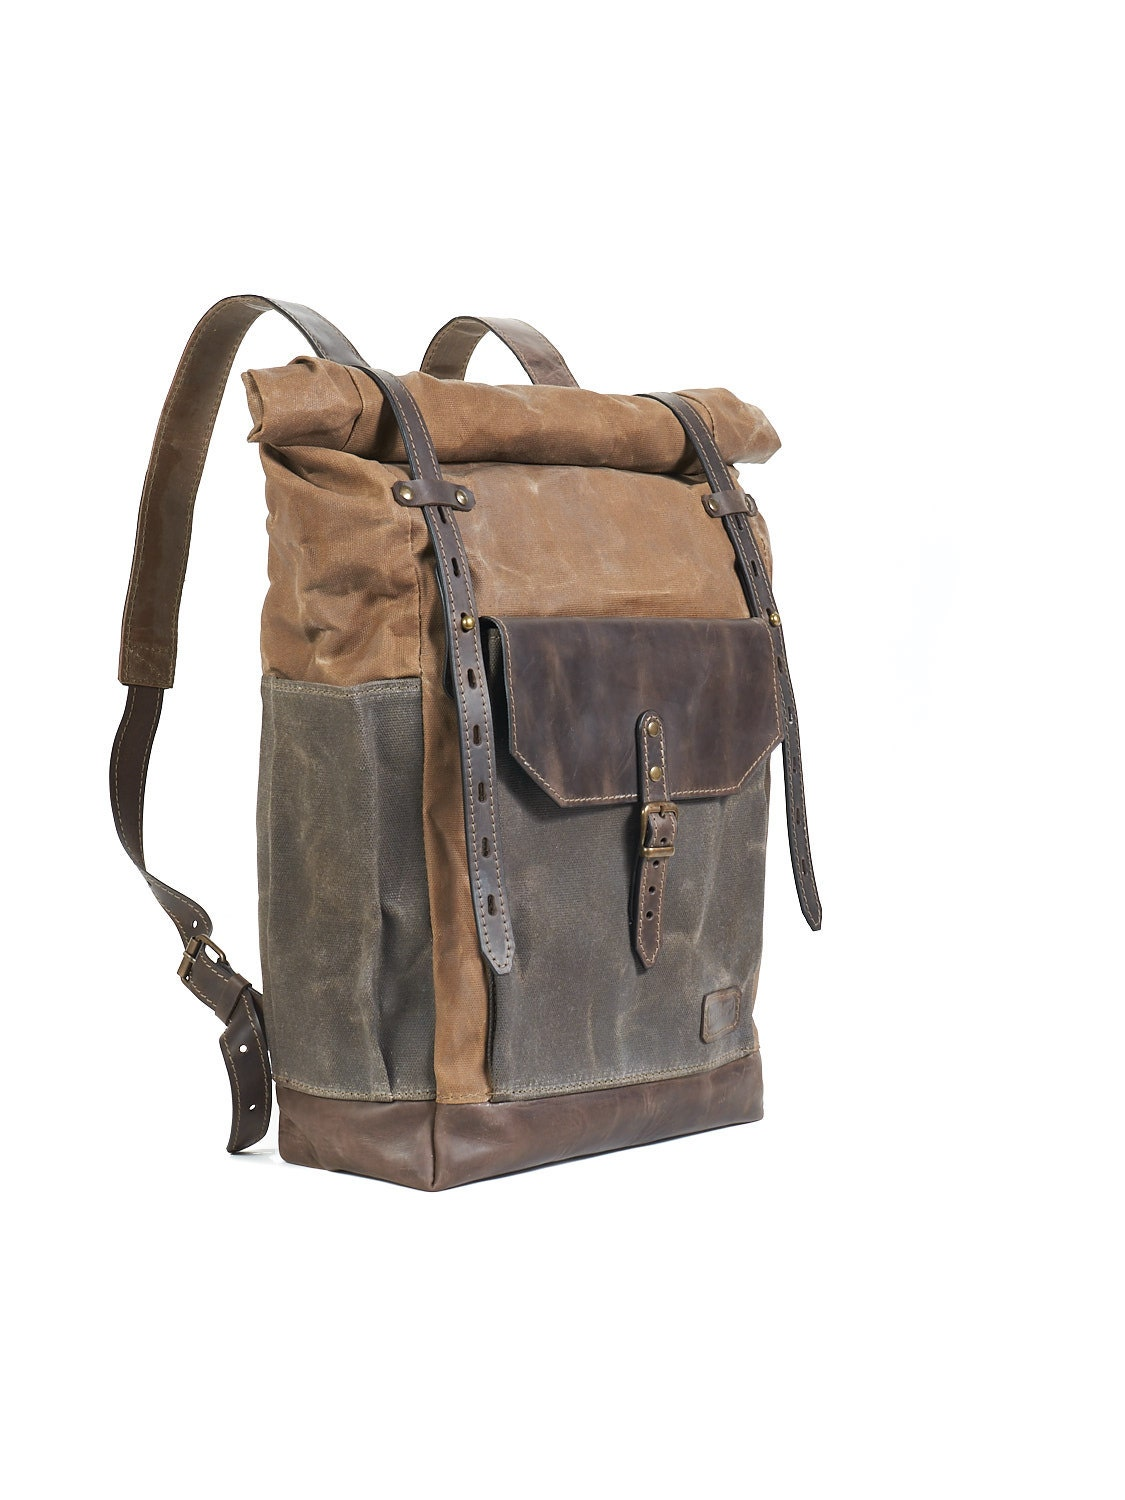 Brown waxed canvas backpack. Waxed canvas leather